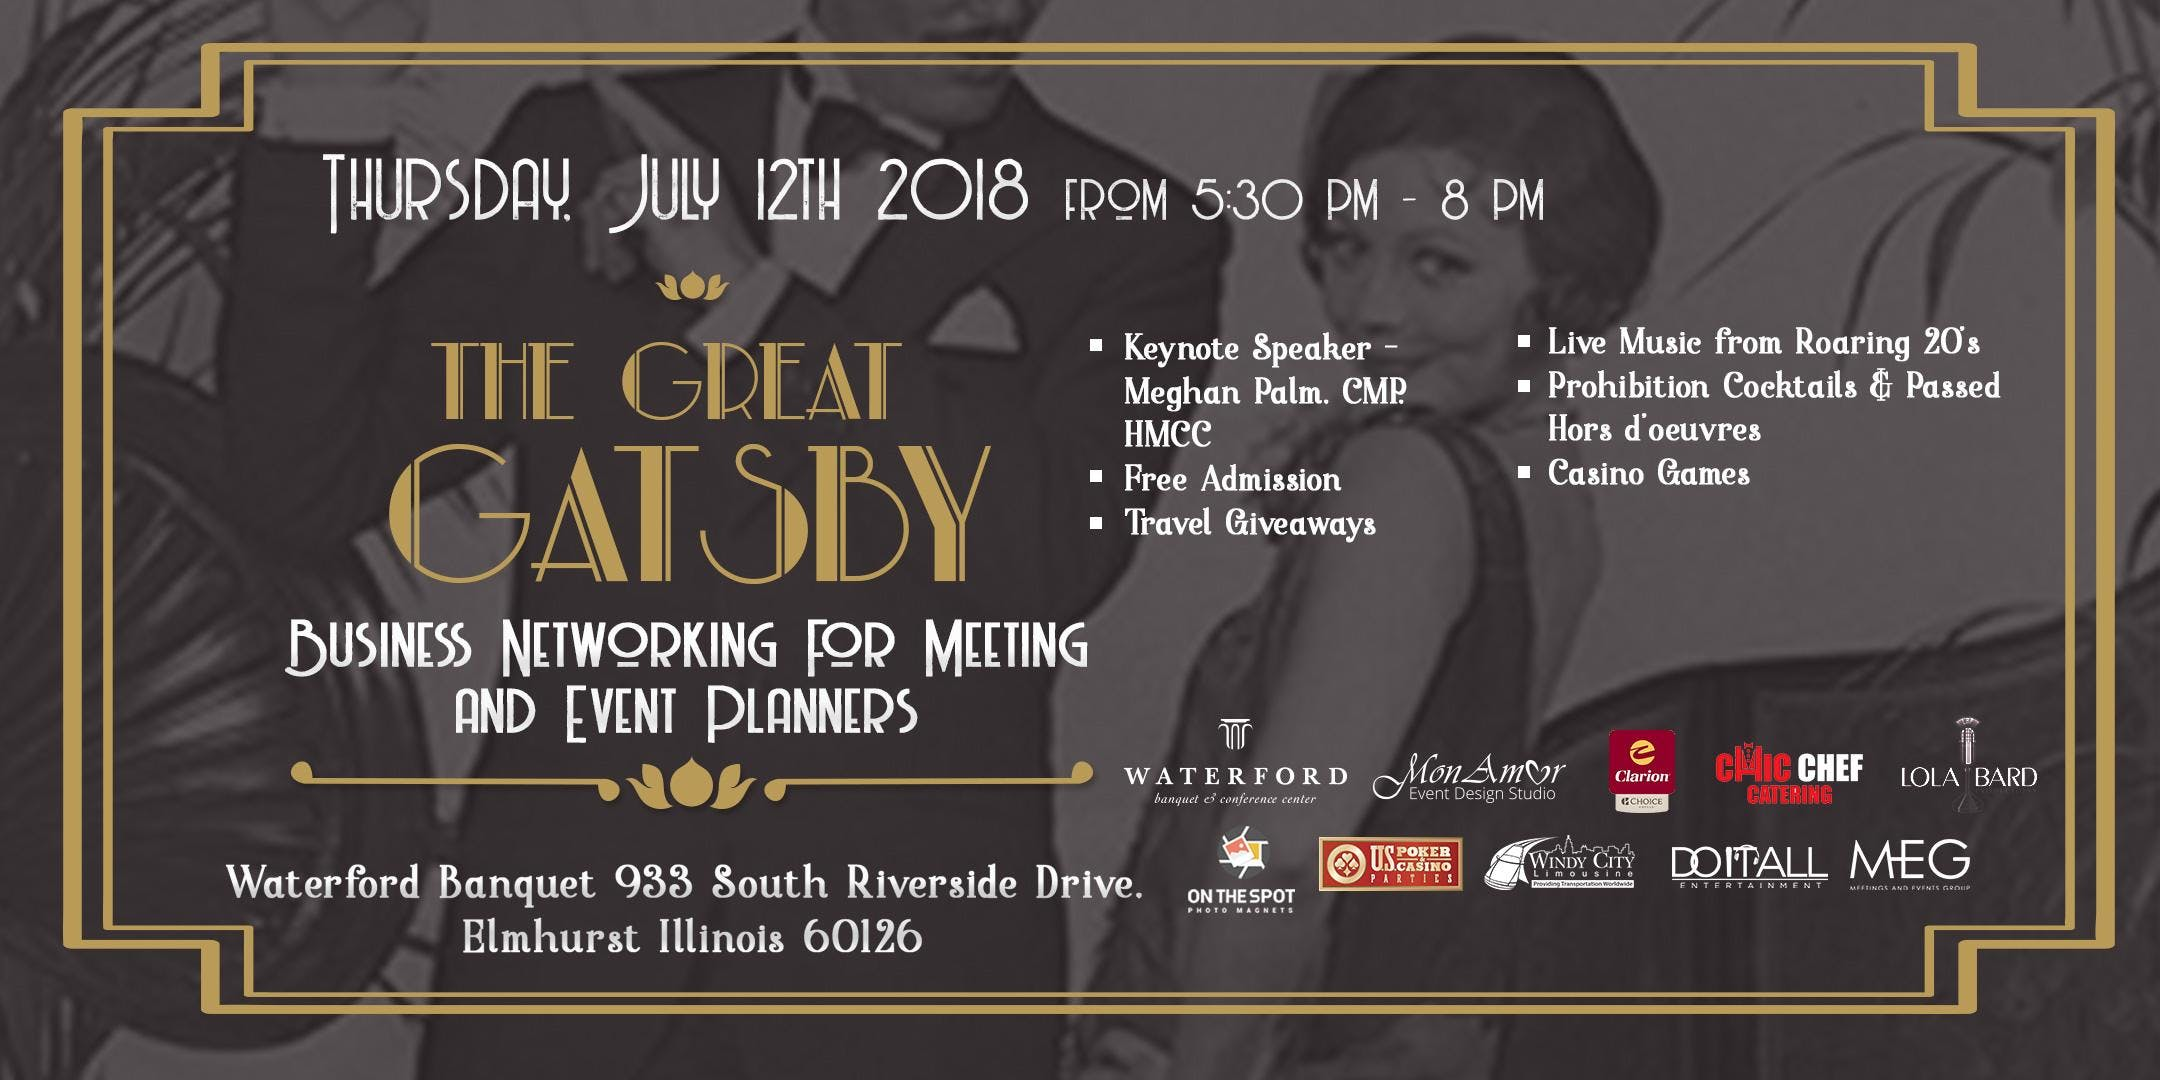 FREE (OakBrook IL) -The Great Gatsby- Meeting Event Planners & Vendors ONLY Networking Event